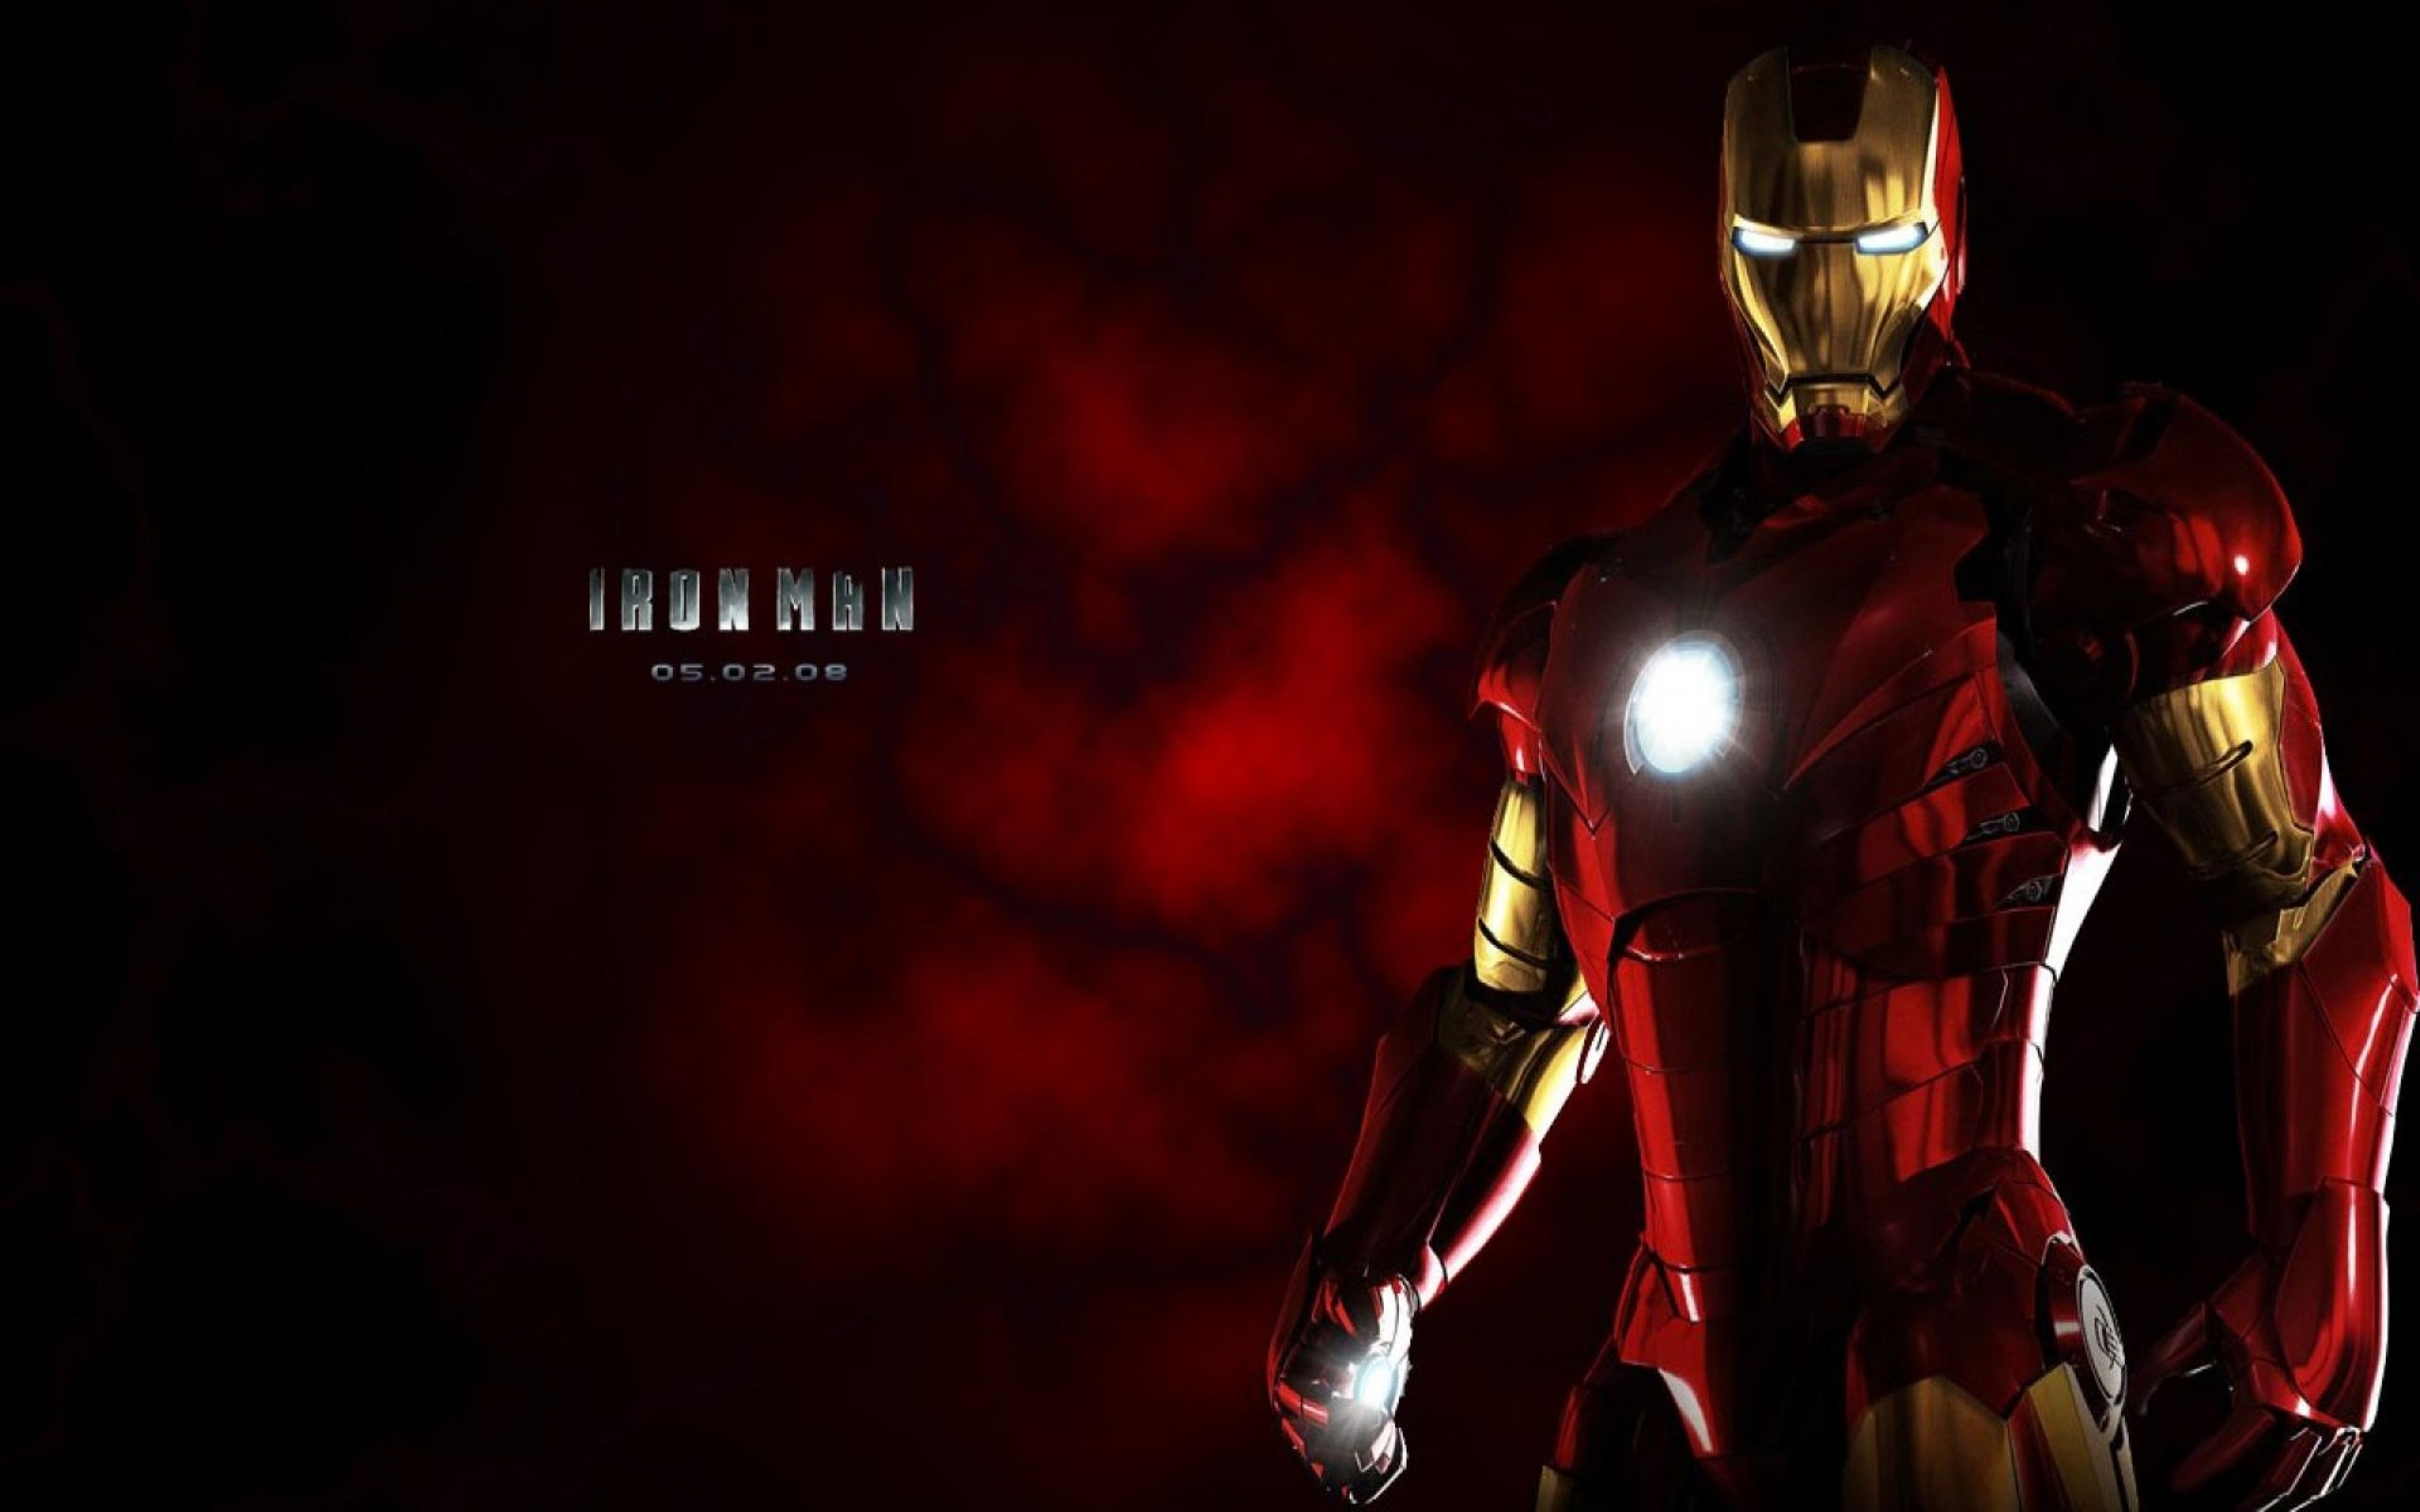 2560x1600 HD Fabulous Iron Man Desktop Wallpaper Full Size - HiReWallpapers 1260